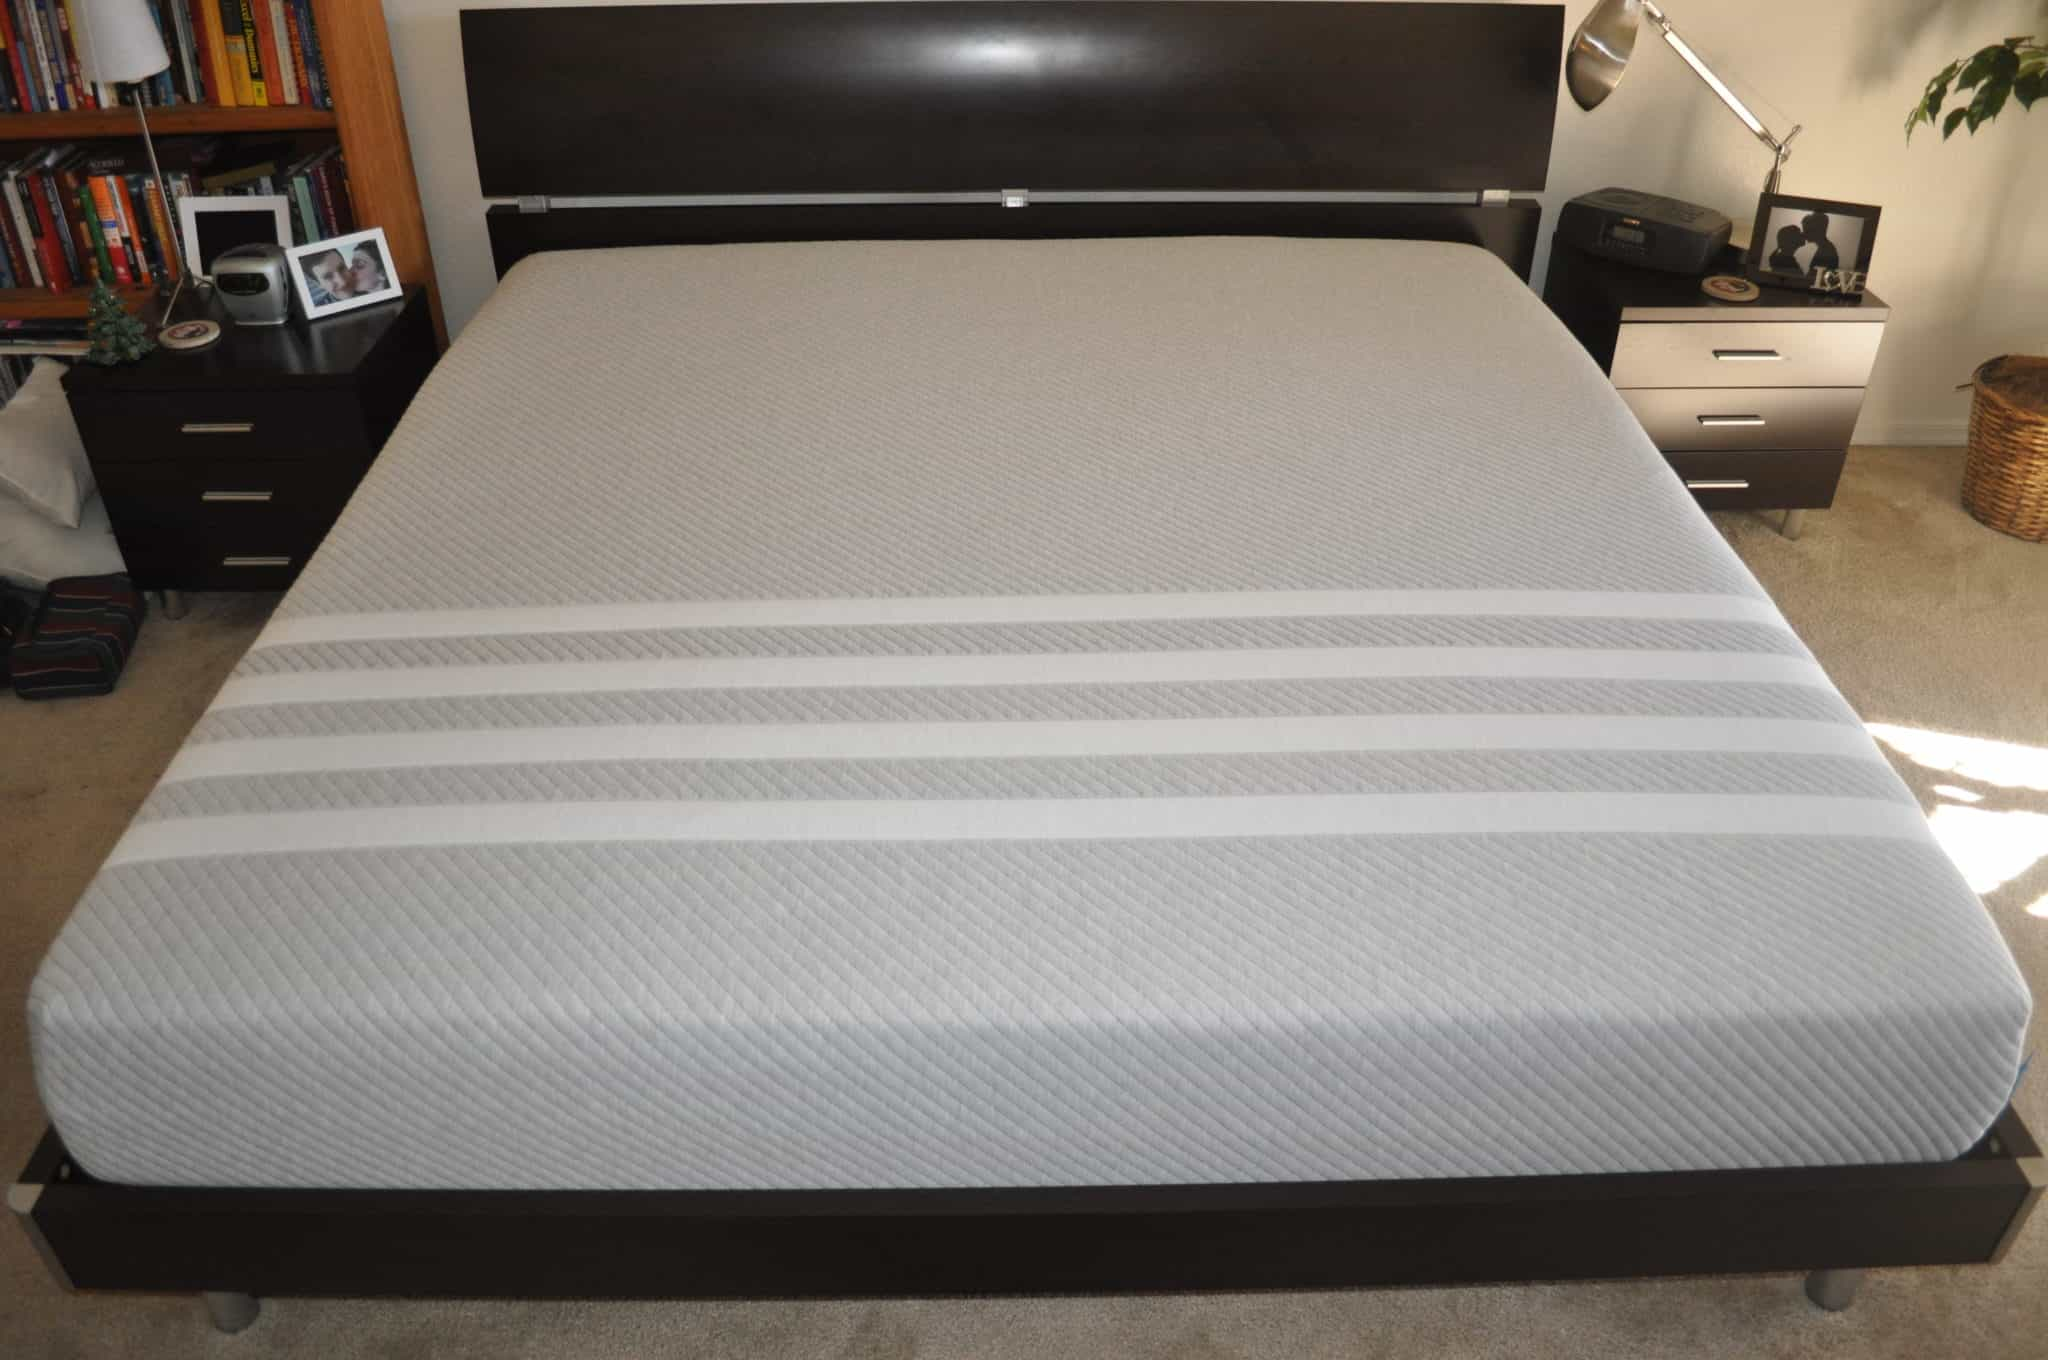 Brooklyn Bedding Vs Tempurpedic Leesa Mattress Review Sleepopolis